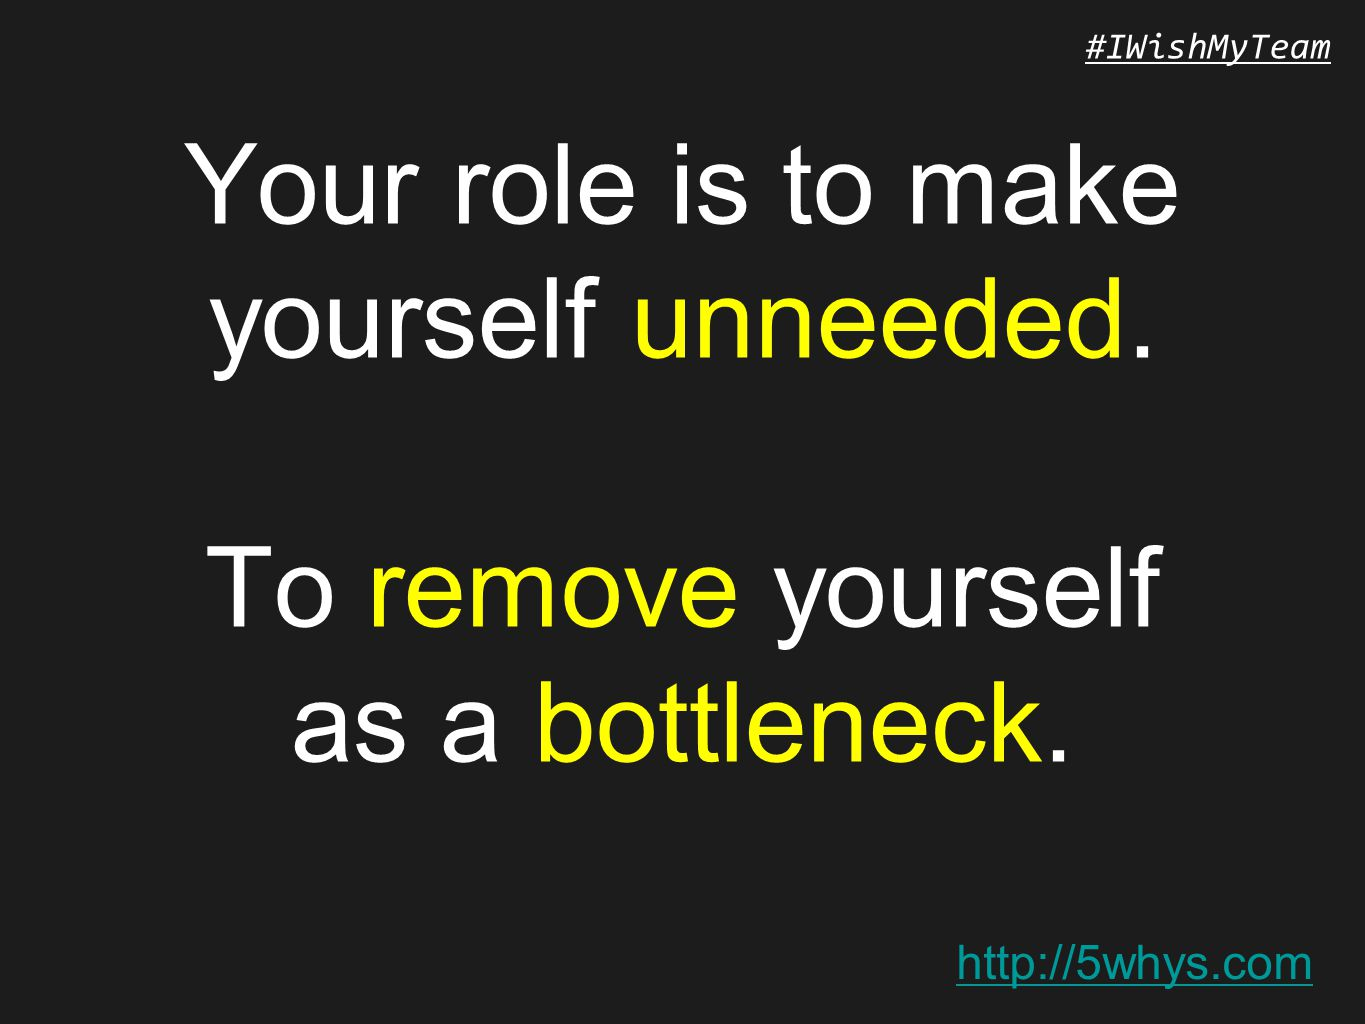 http://5whys.com #IWishMyTeam Your role is to make yourself unneeded.